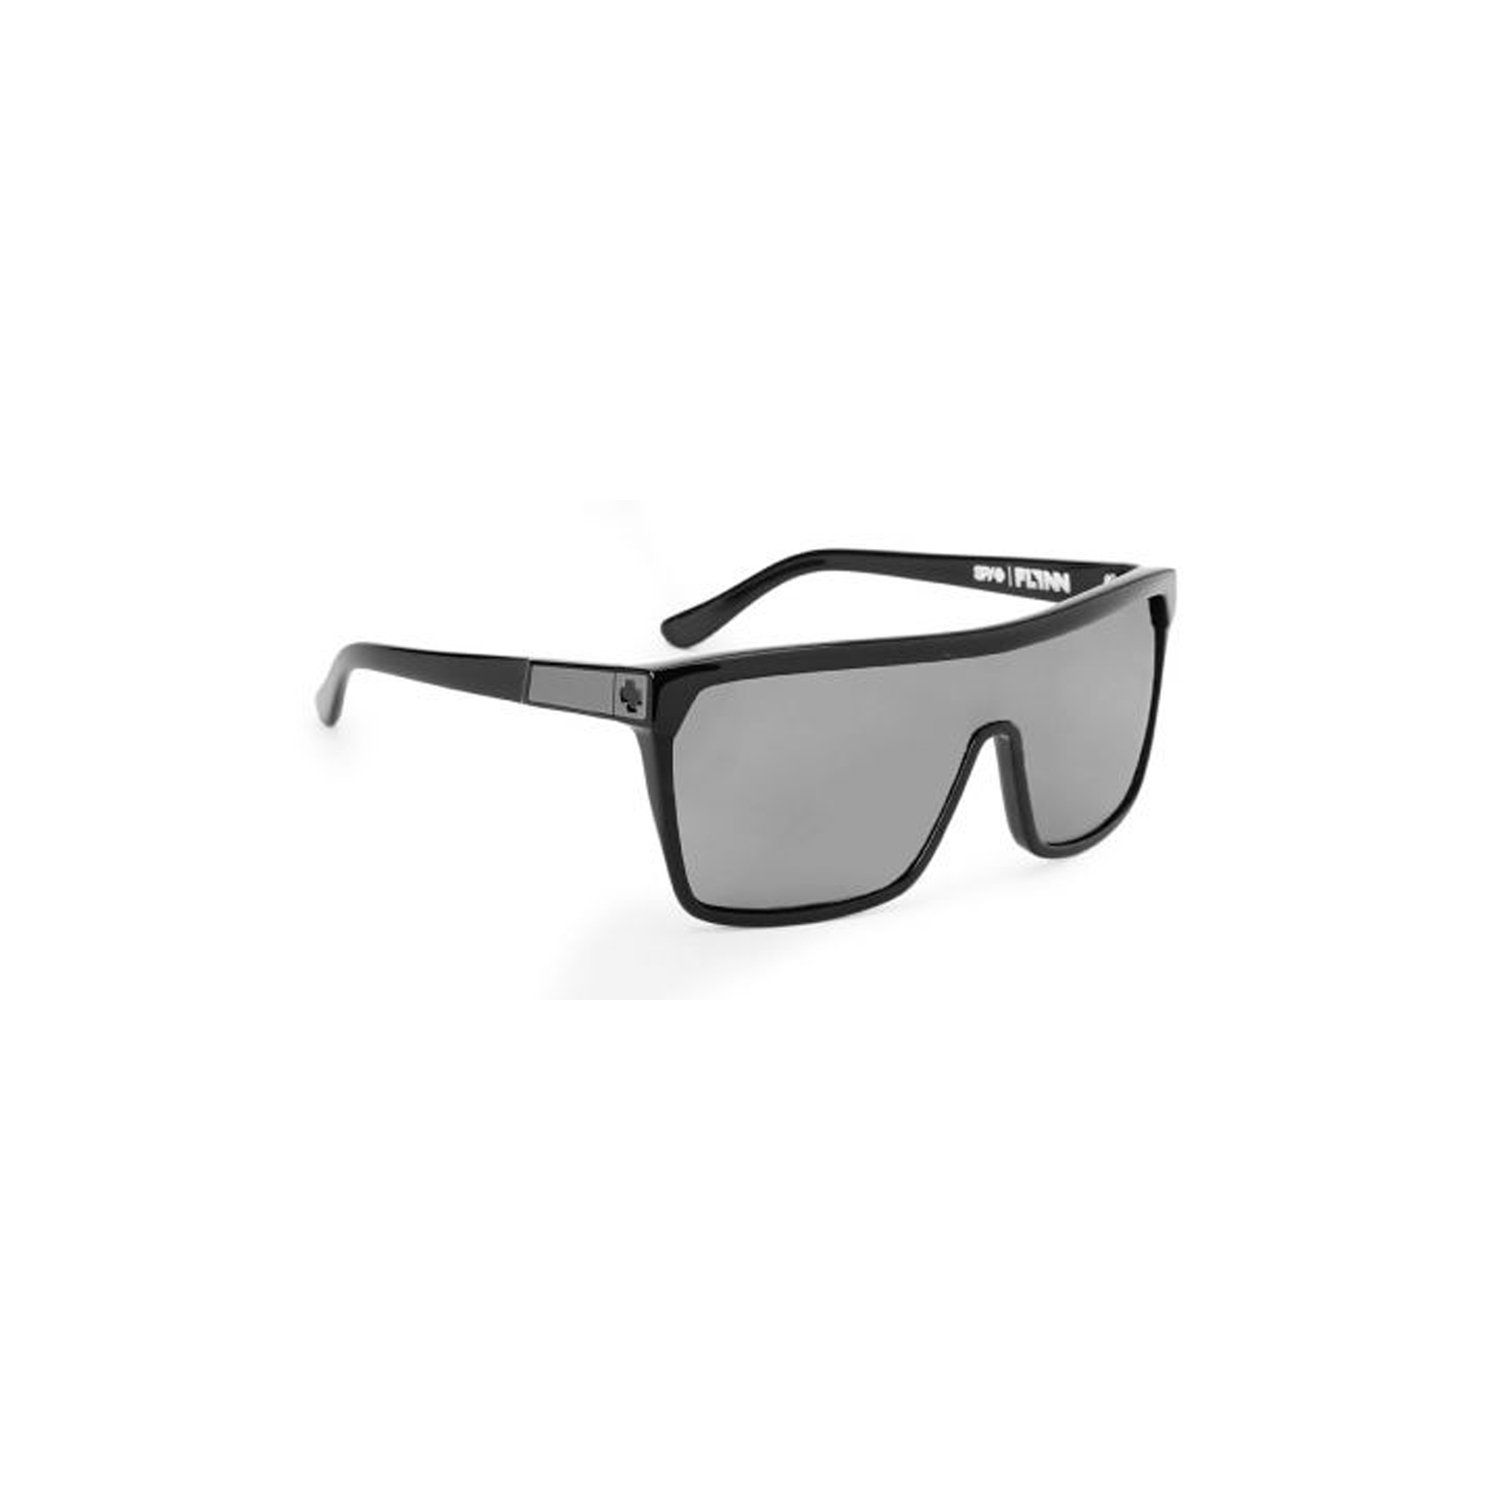 Spy Flynn Sunglasses - Spy Optic Look Series Casual Wear Eyewear - Black with Matte Black/Grey / One Size Fits All by Spy